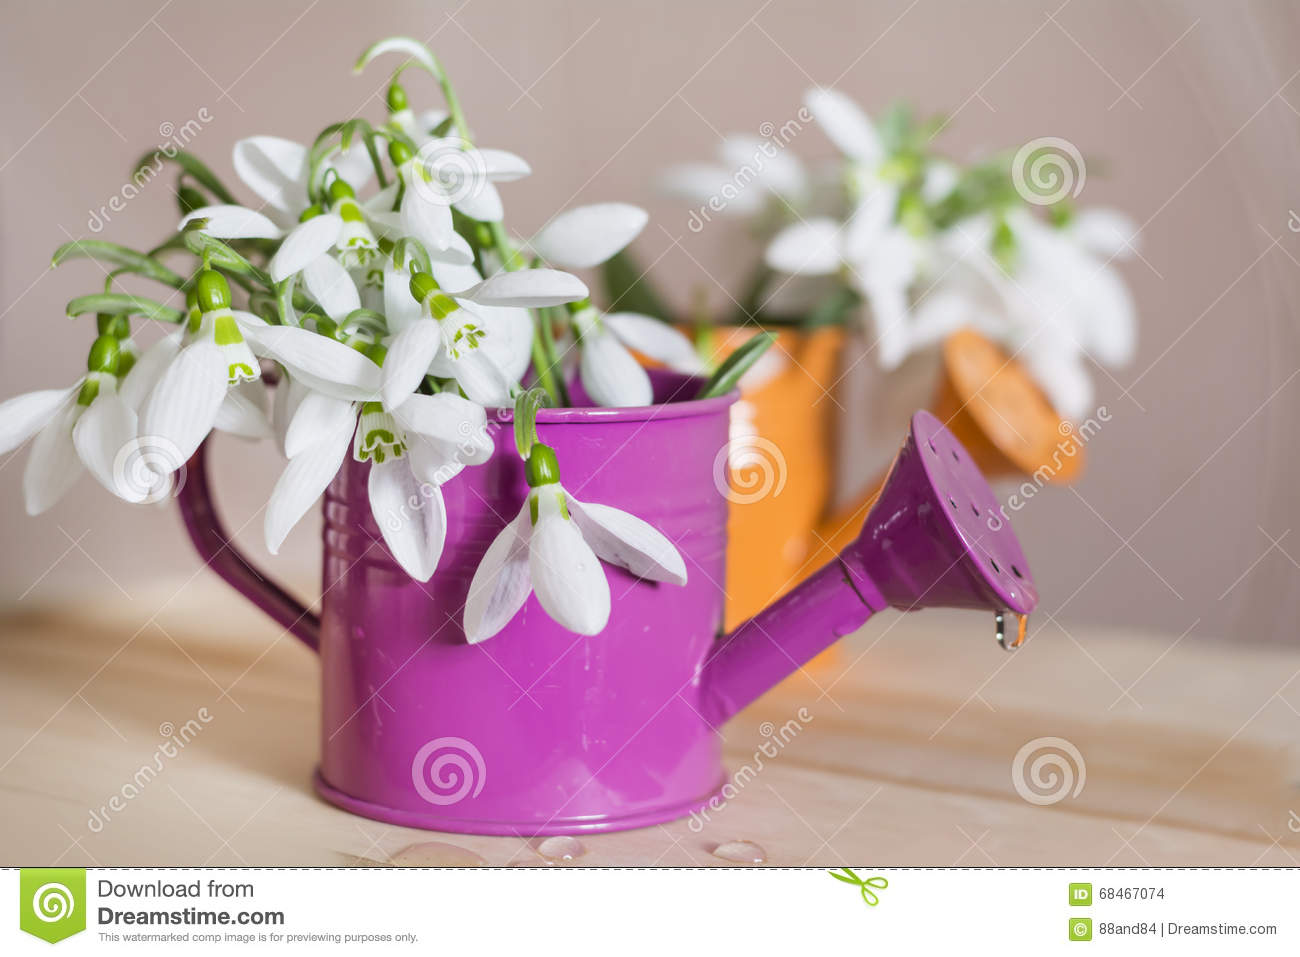 Beautiful snowdrops flowers in small decorative watering can vase beautiful snowdrops flowers in small decorative watering can vase reviewsmspy